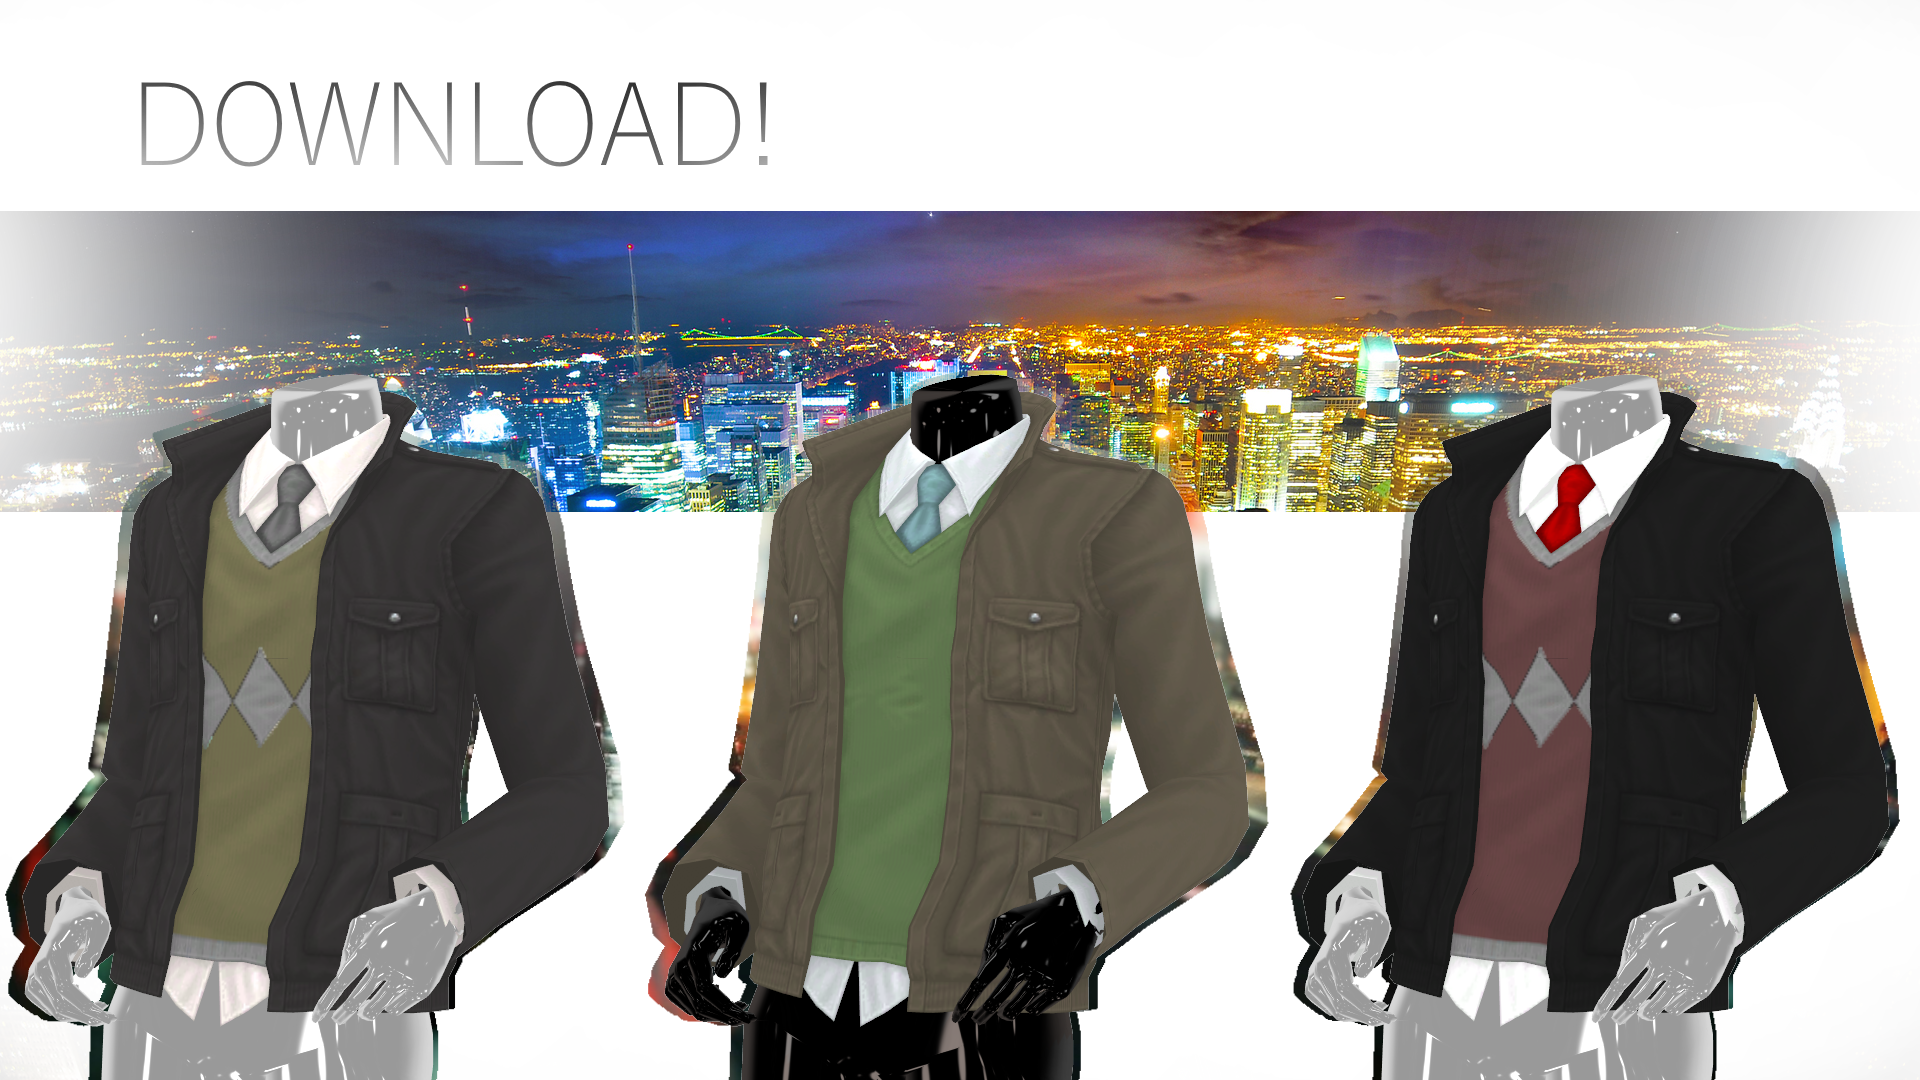 Tda Adult Male Fitted Jacket Download By Nephnashine P On Deviantart